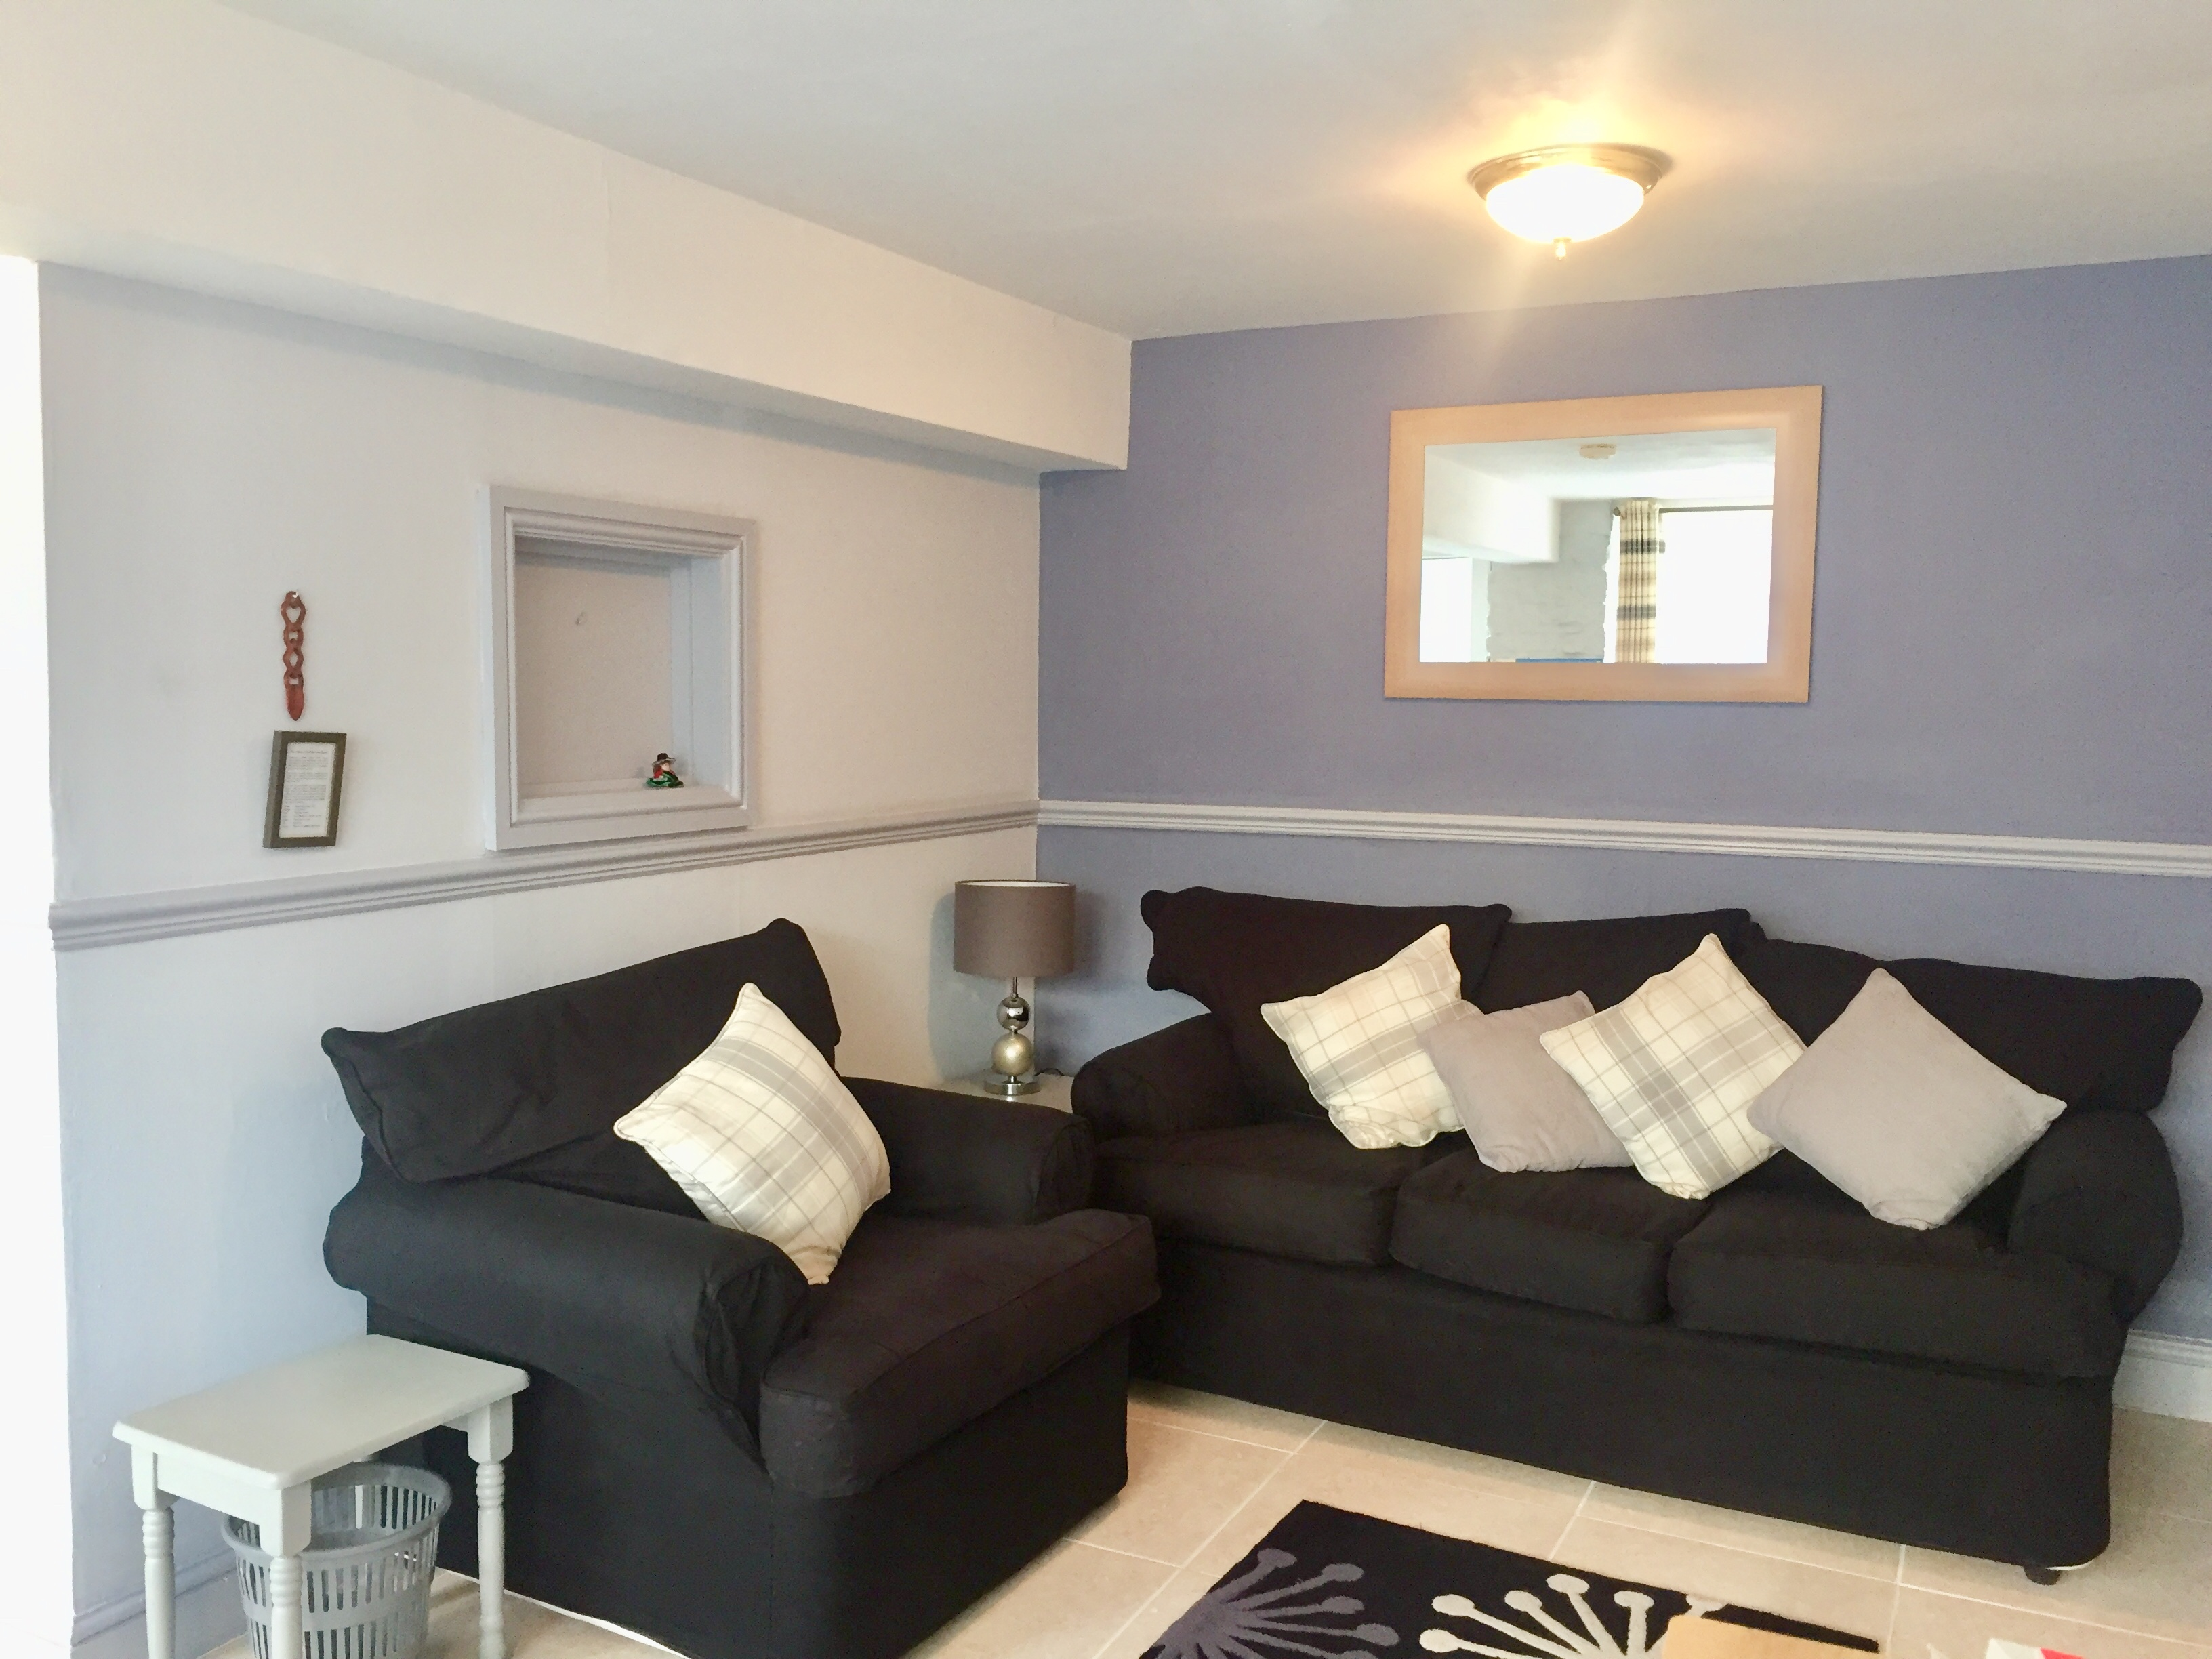 Lounge area in the 2 bedroom holiday cottage at Hayloft at Cwmcrwth Farm Holiday Cottages in West Wales